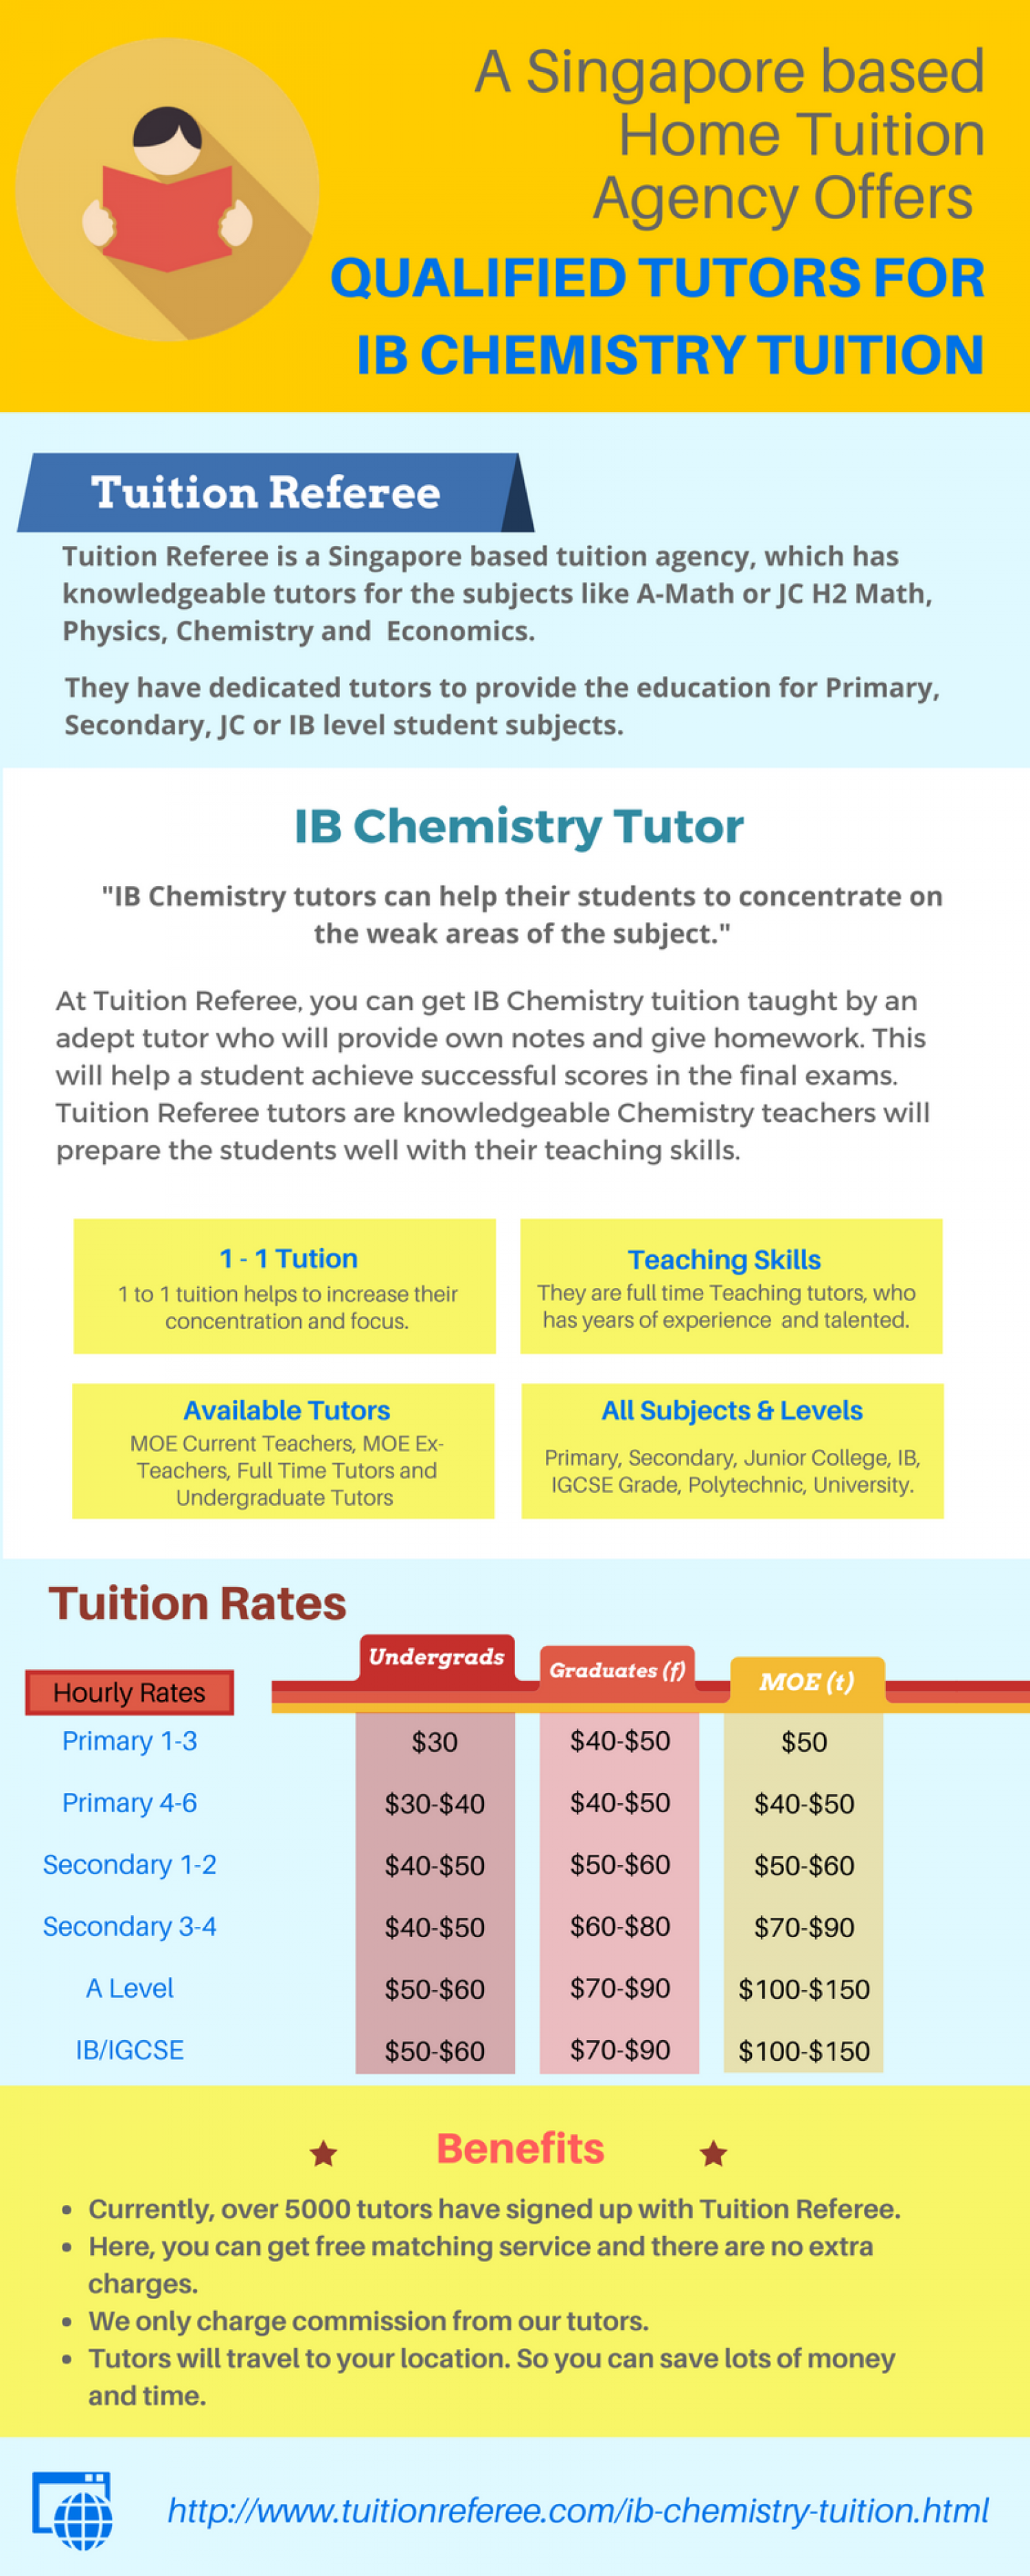 A Singapore based Home Tuition Agency Offers Qualified Tutors for IB Chemistry Tuition